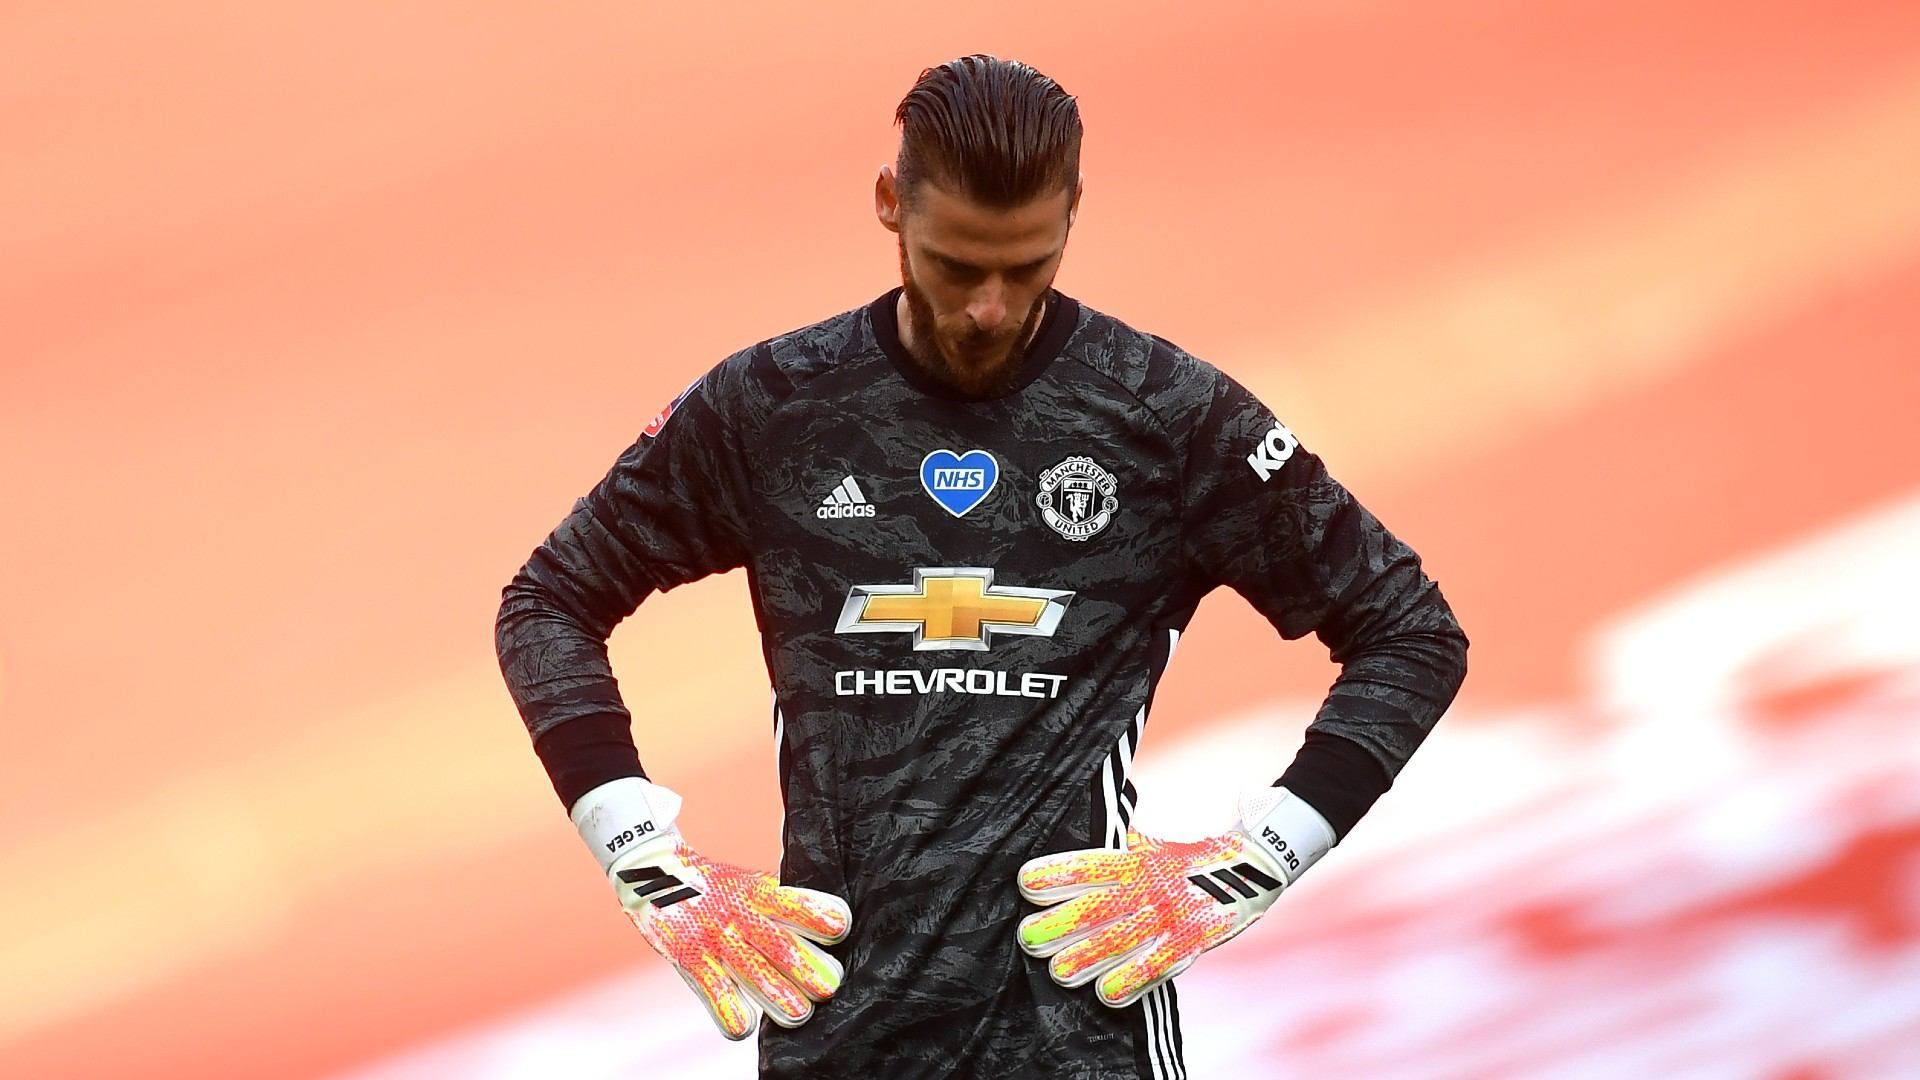 'De Gea is finished' - Manchester United goalkeeper slammed for FA Cup loss to Chelsea